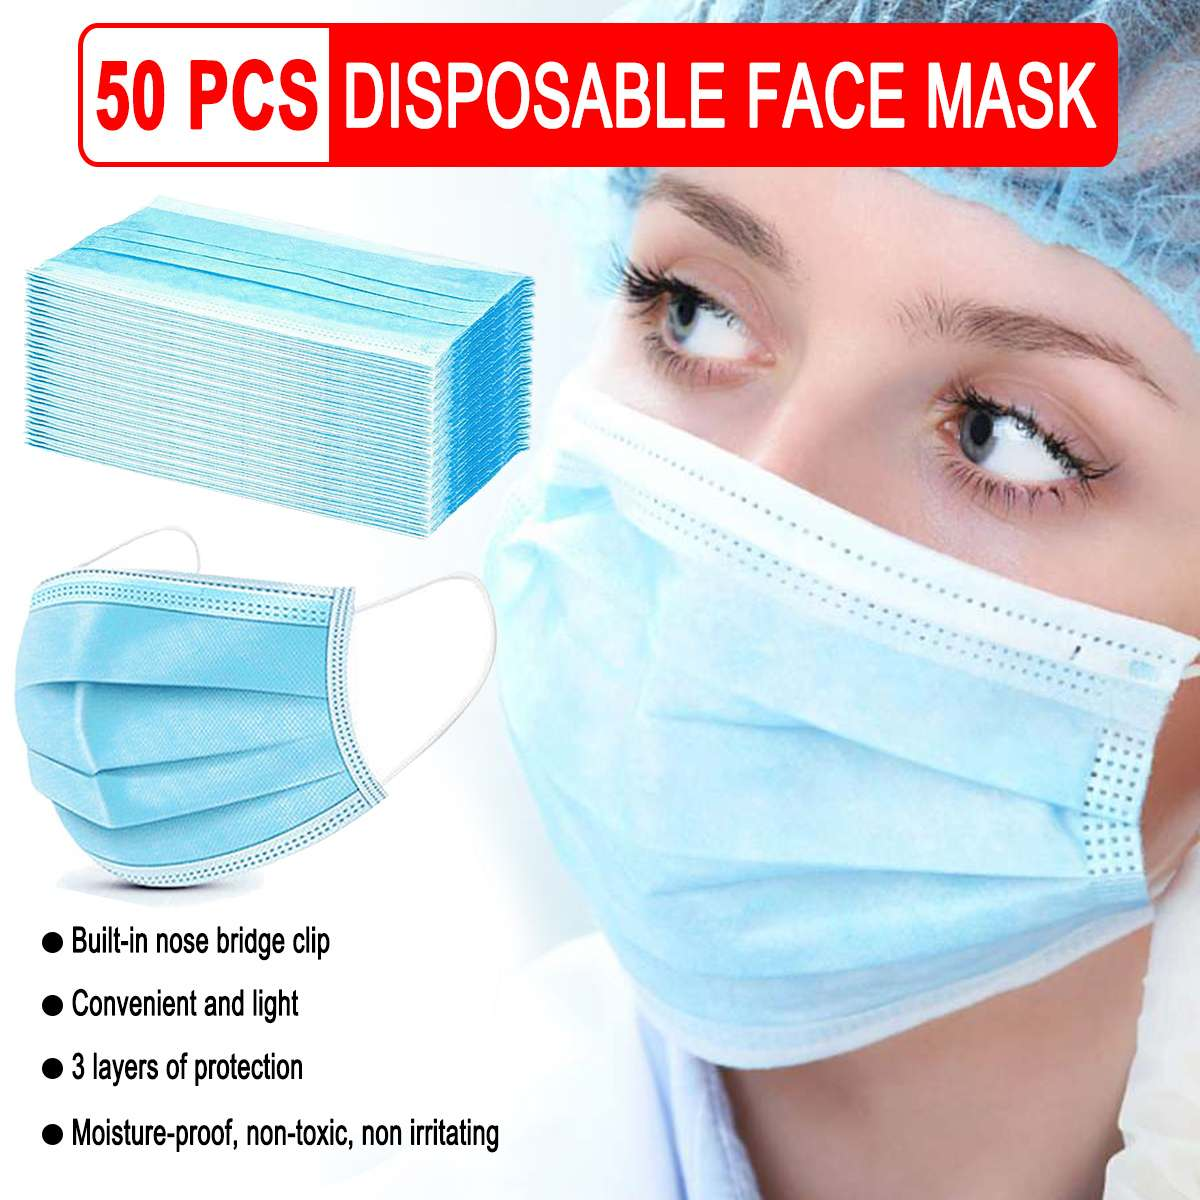 50pcs Disposable Mask Mouth Face Safety Protective Mask Filtraion Cotton Mouth Mask Anti-Dust 3-layer Filtration Against Droplet